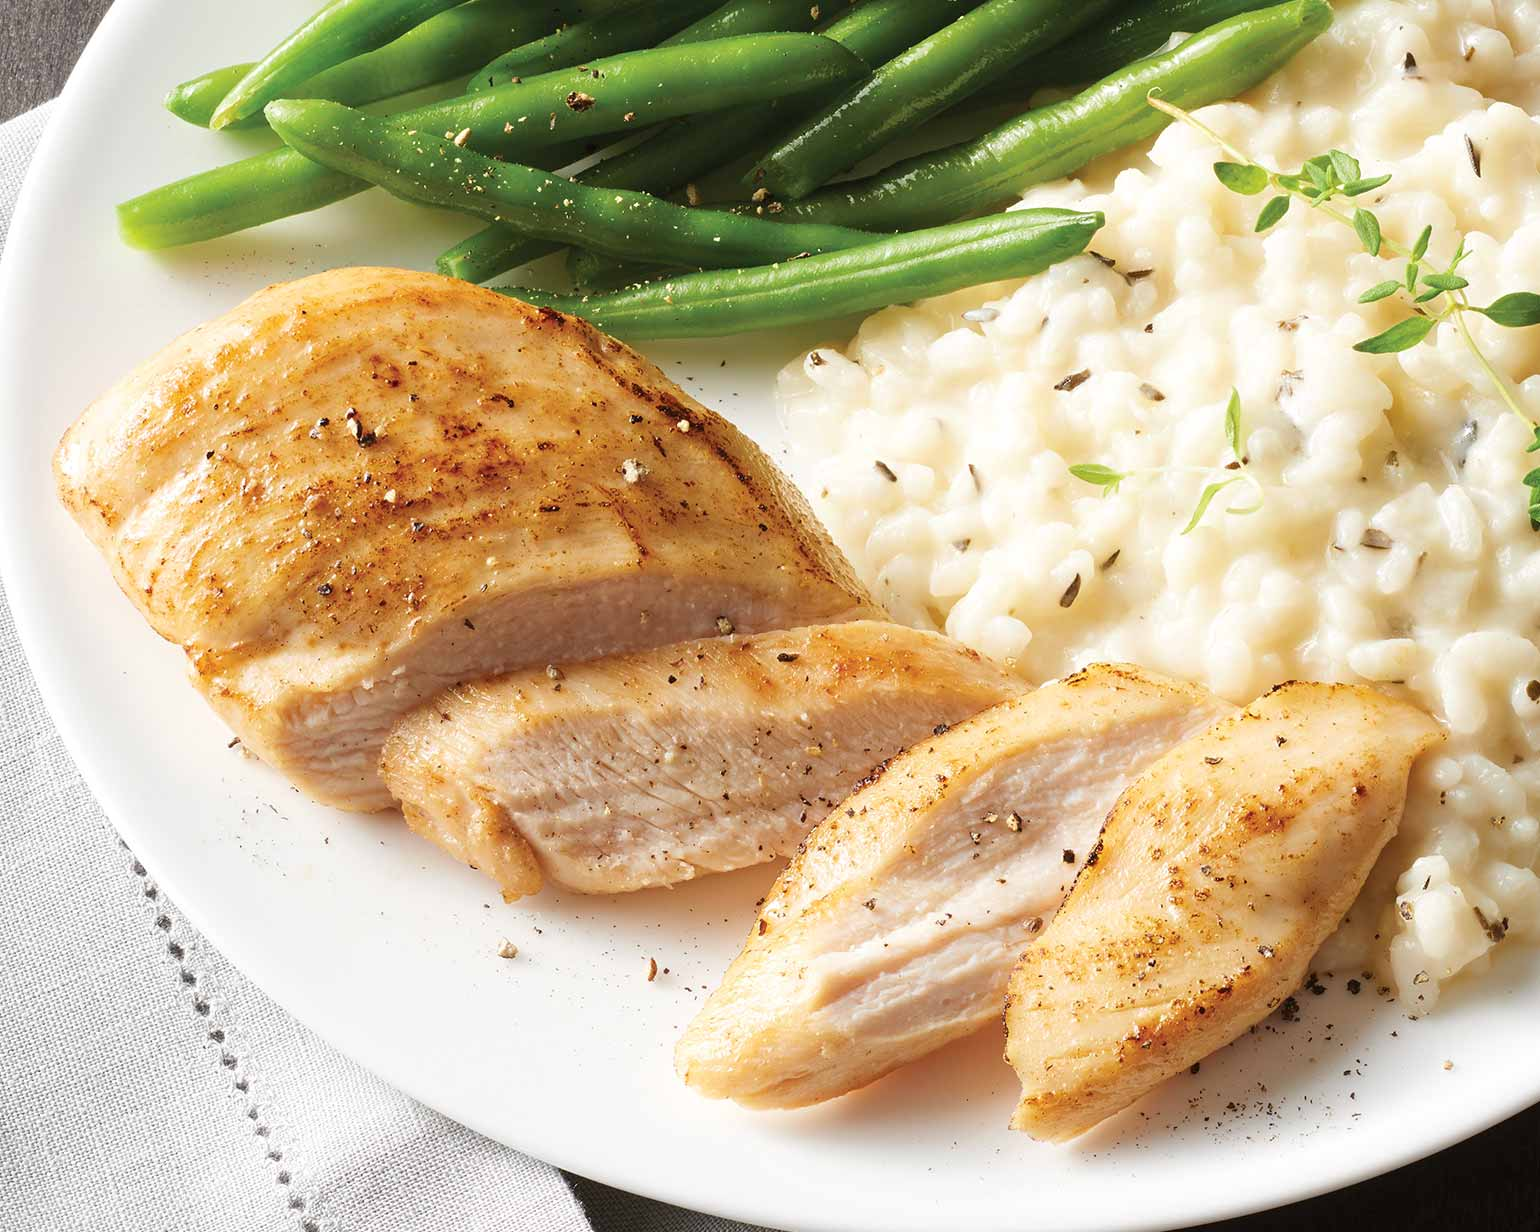 Signature Chicken Breast Fillets